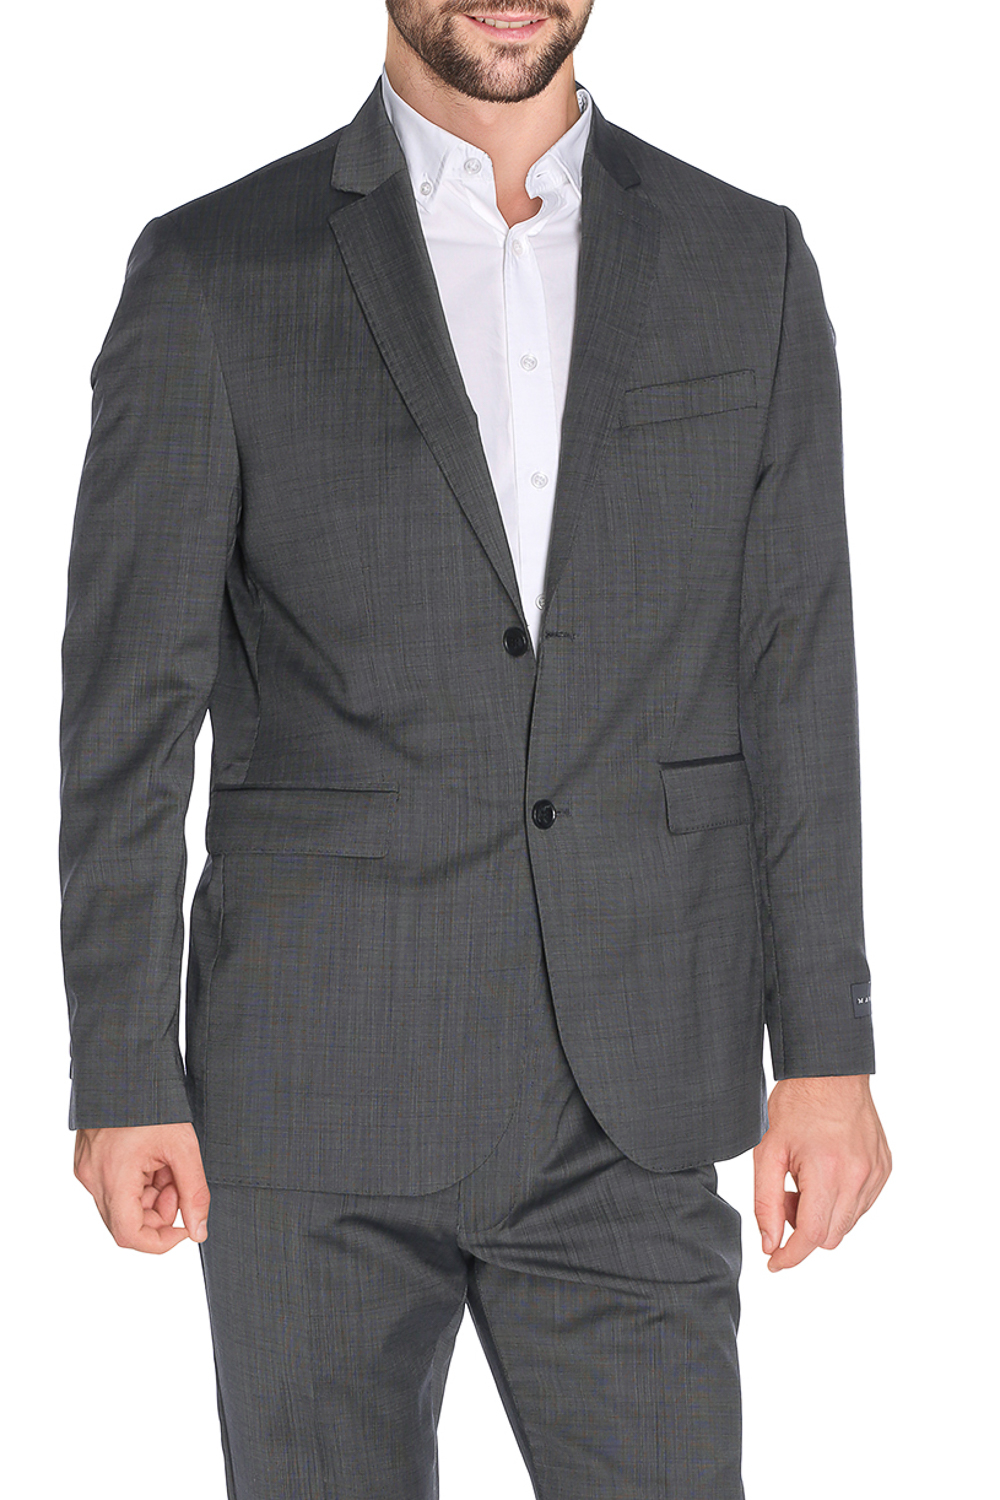 CAMBRIDGE - Veste47CG1VE605Gris